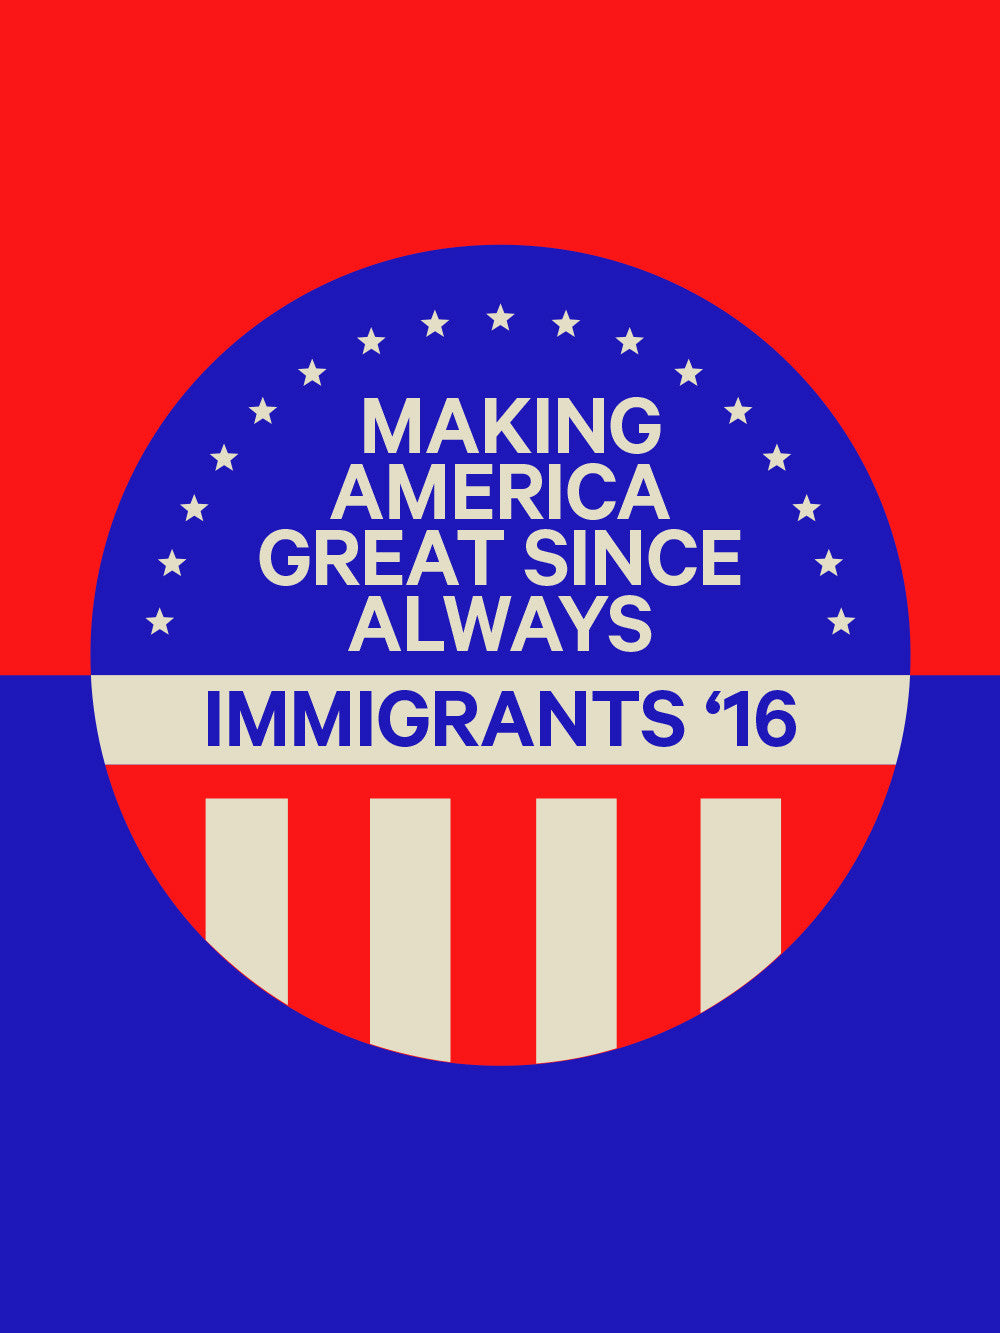 IMMIGRANTS '16 POSTER